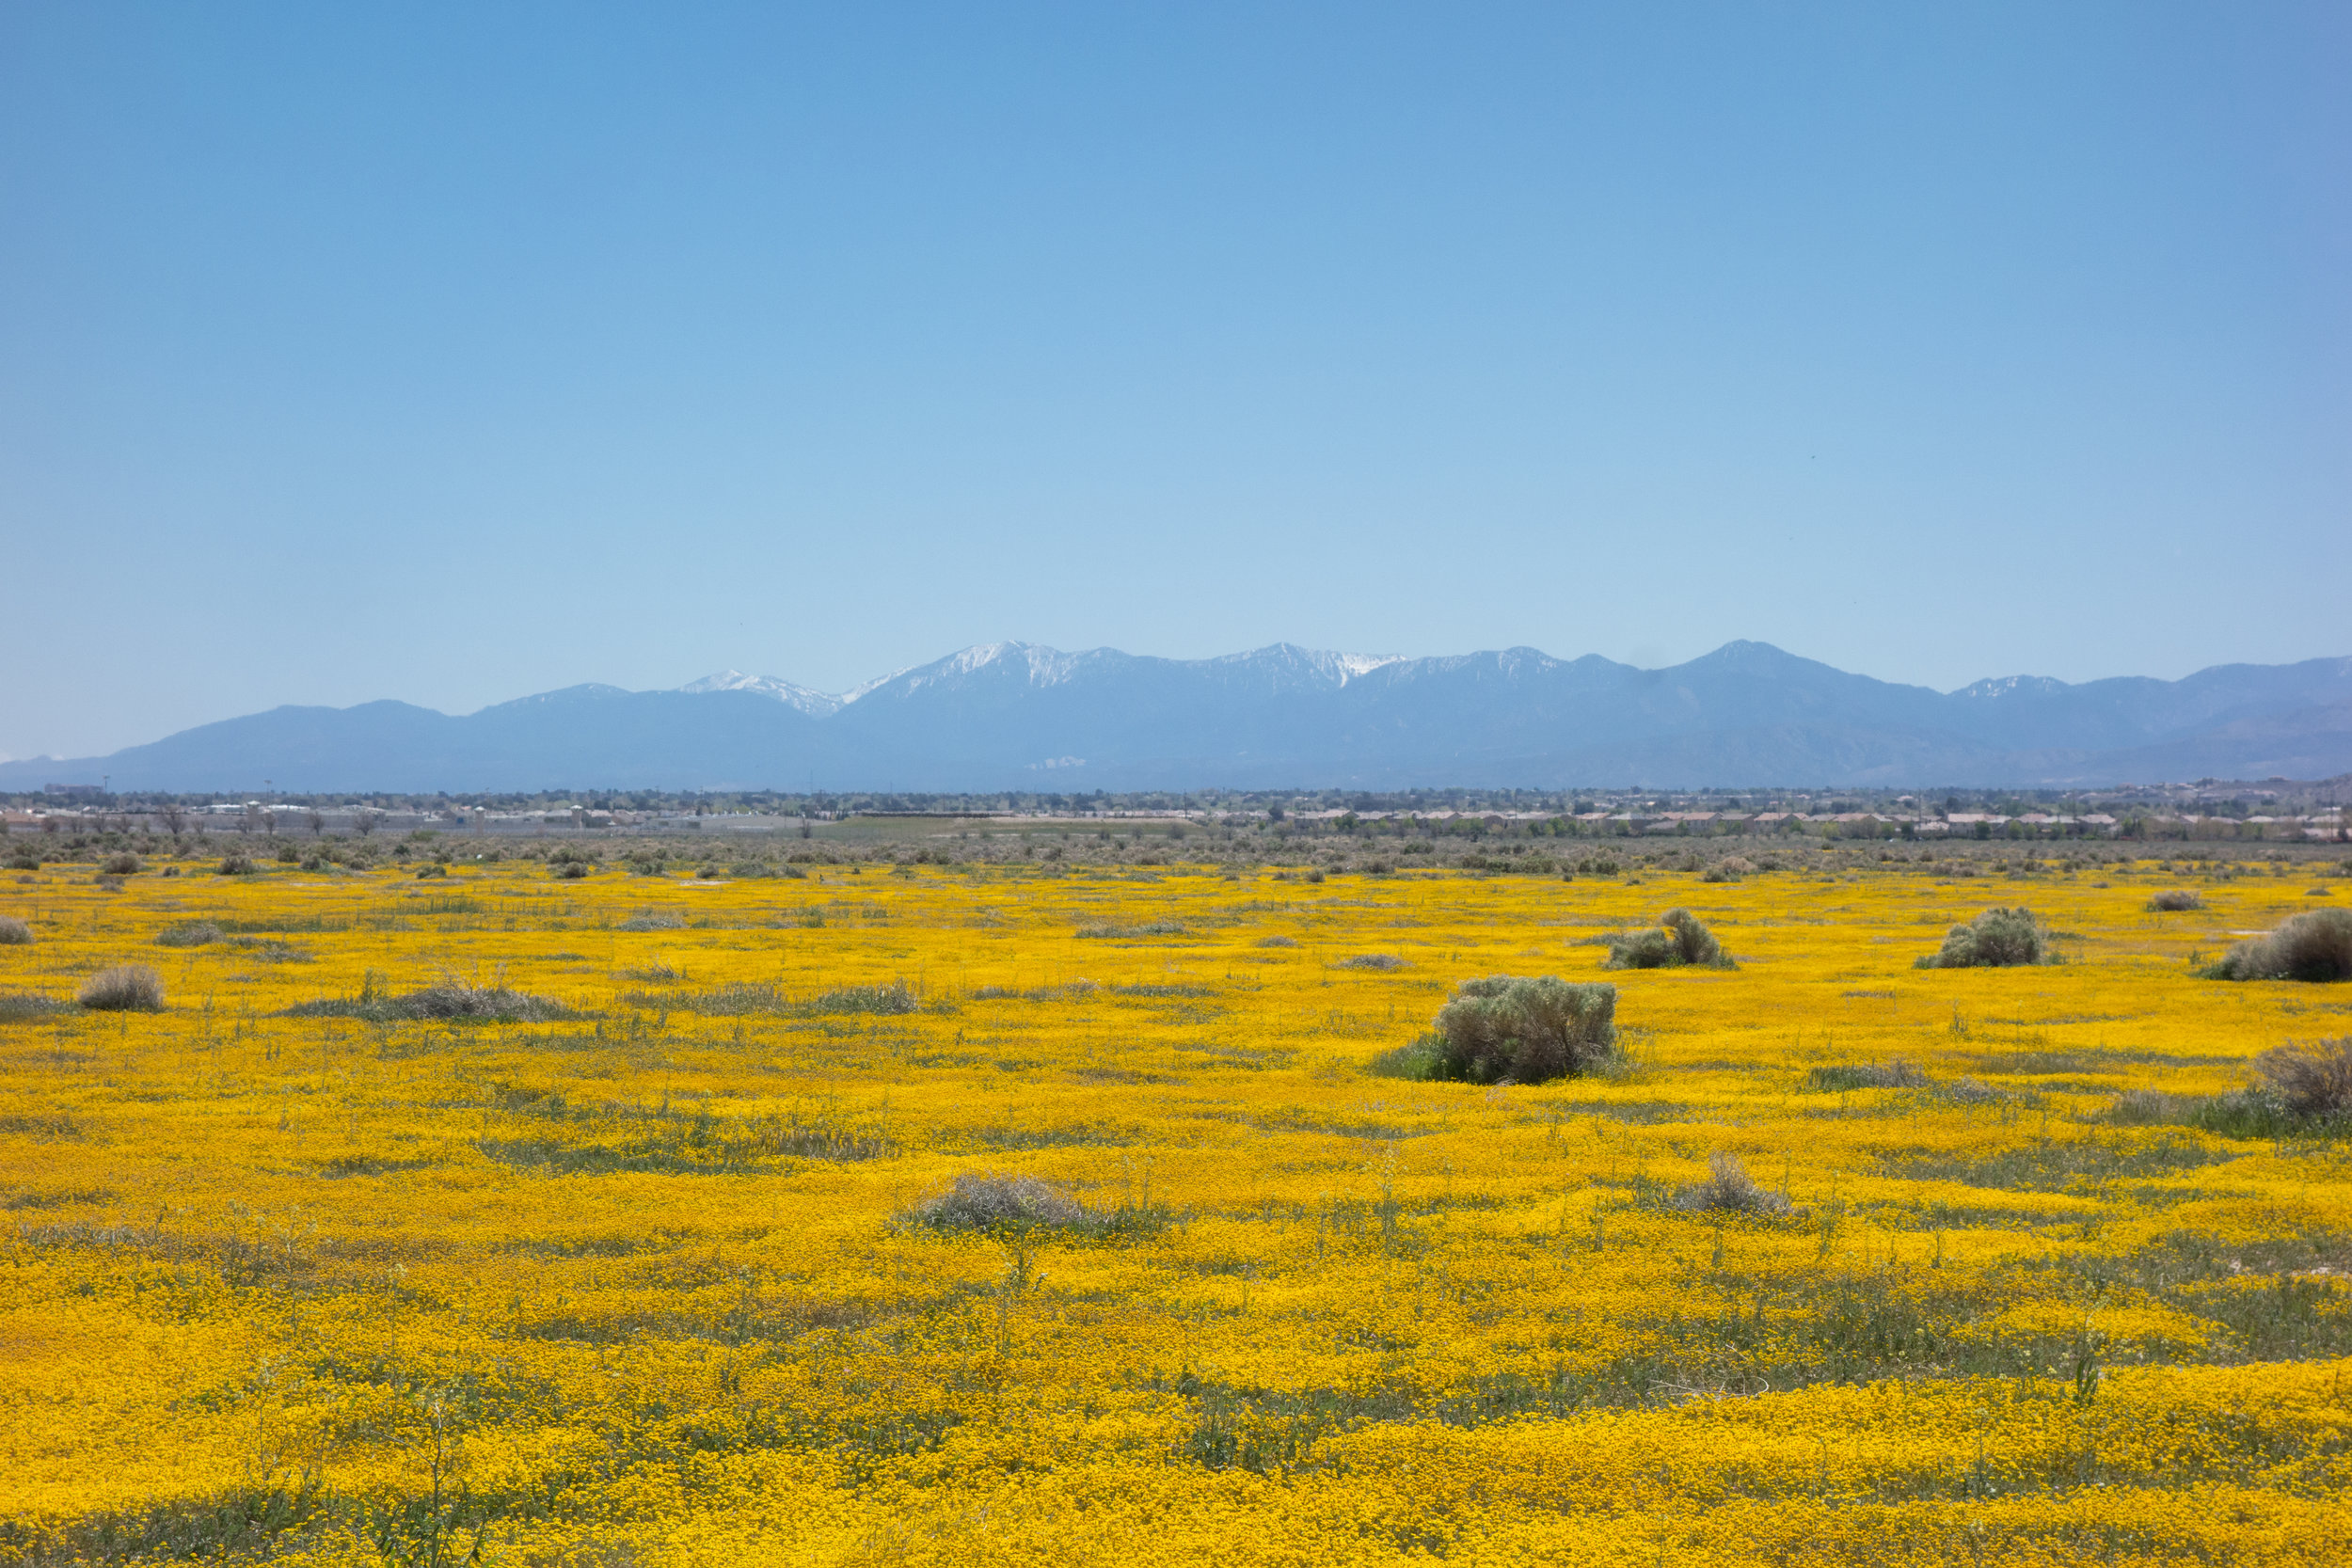 Snow covered mountains in the distance. The colors of all the wildflowers are just incredible. All the photos published here are all #nofilter and not retouched!